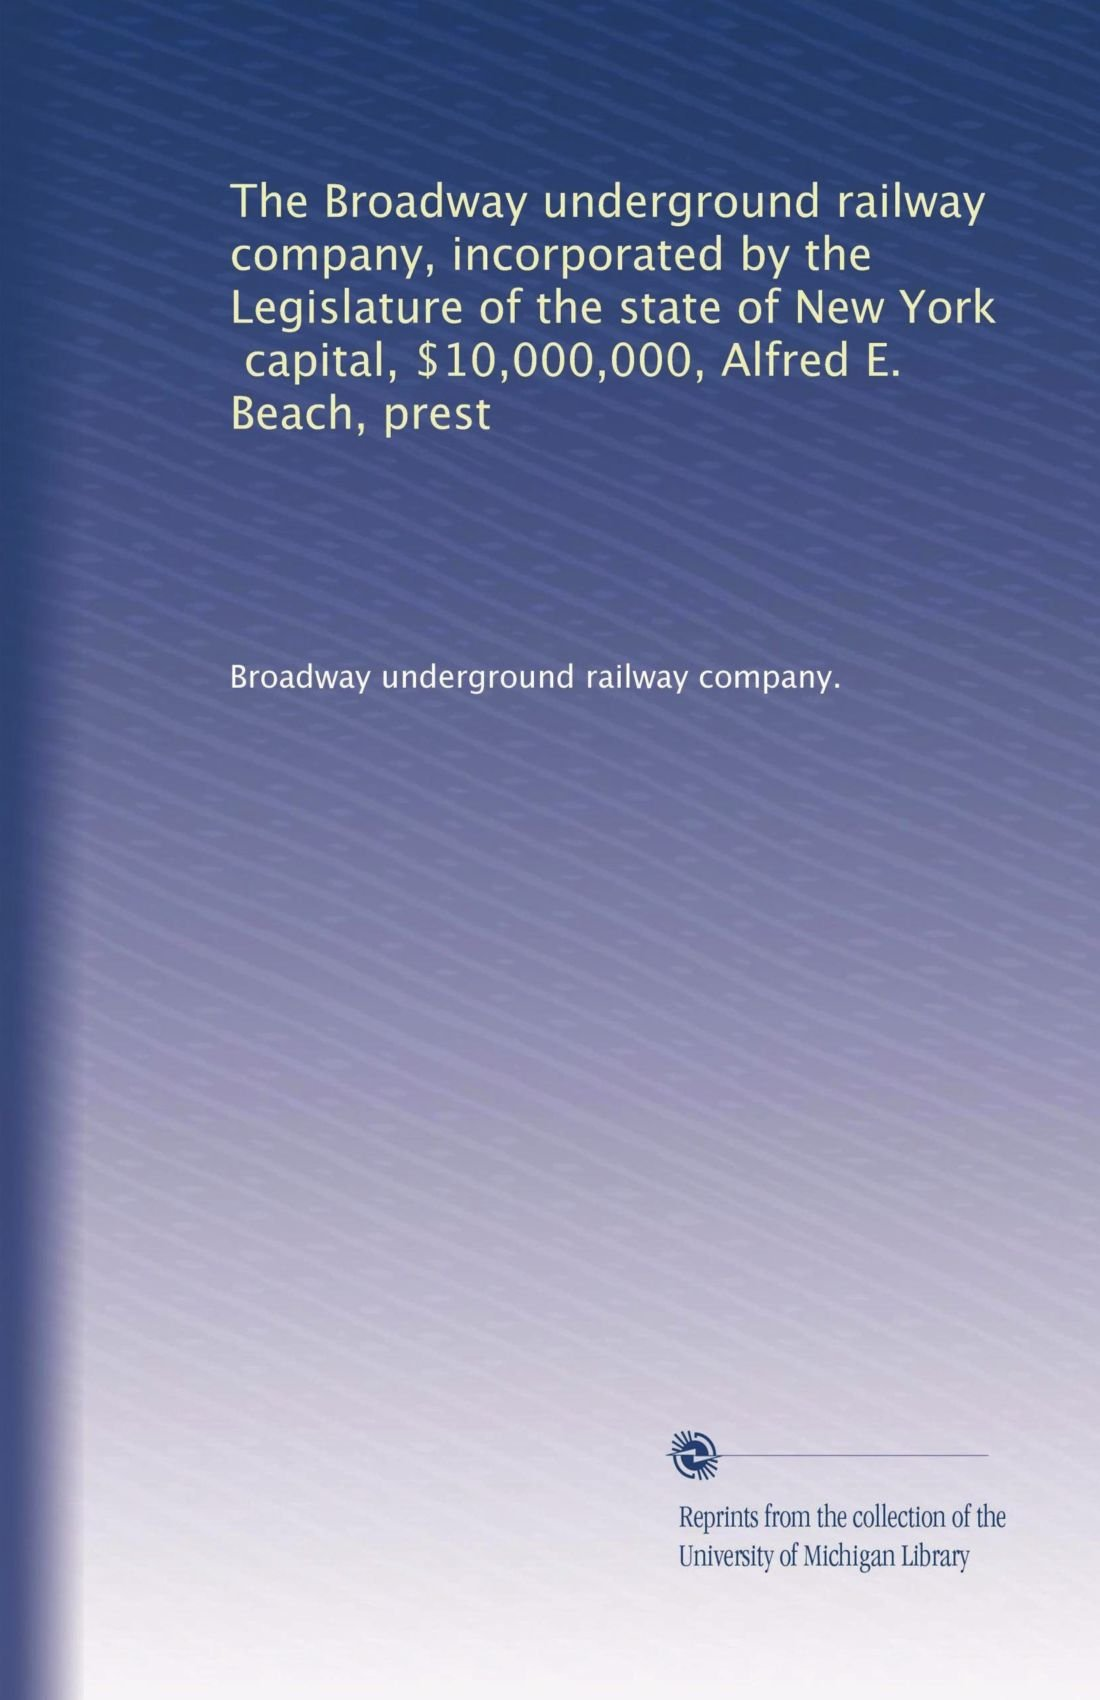 Download The Broadway underground railway company, incorporated by the Legislature of the state of New York, capital, $10,000,000, Alfred E. Beach, prest pdf epub